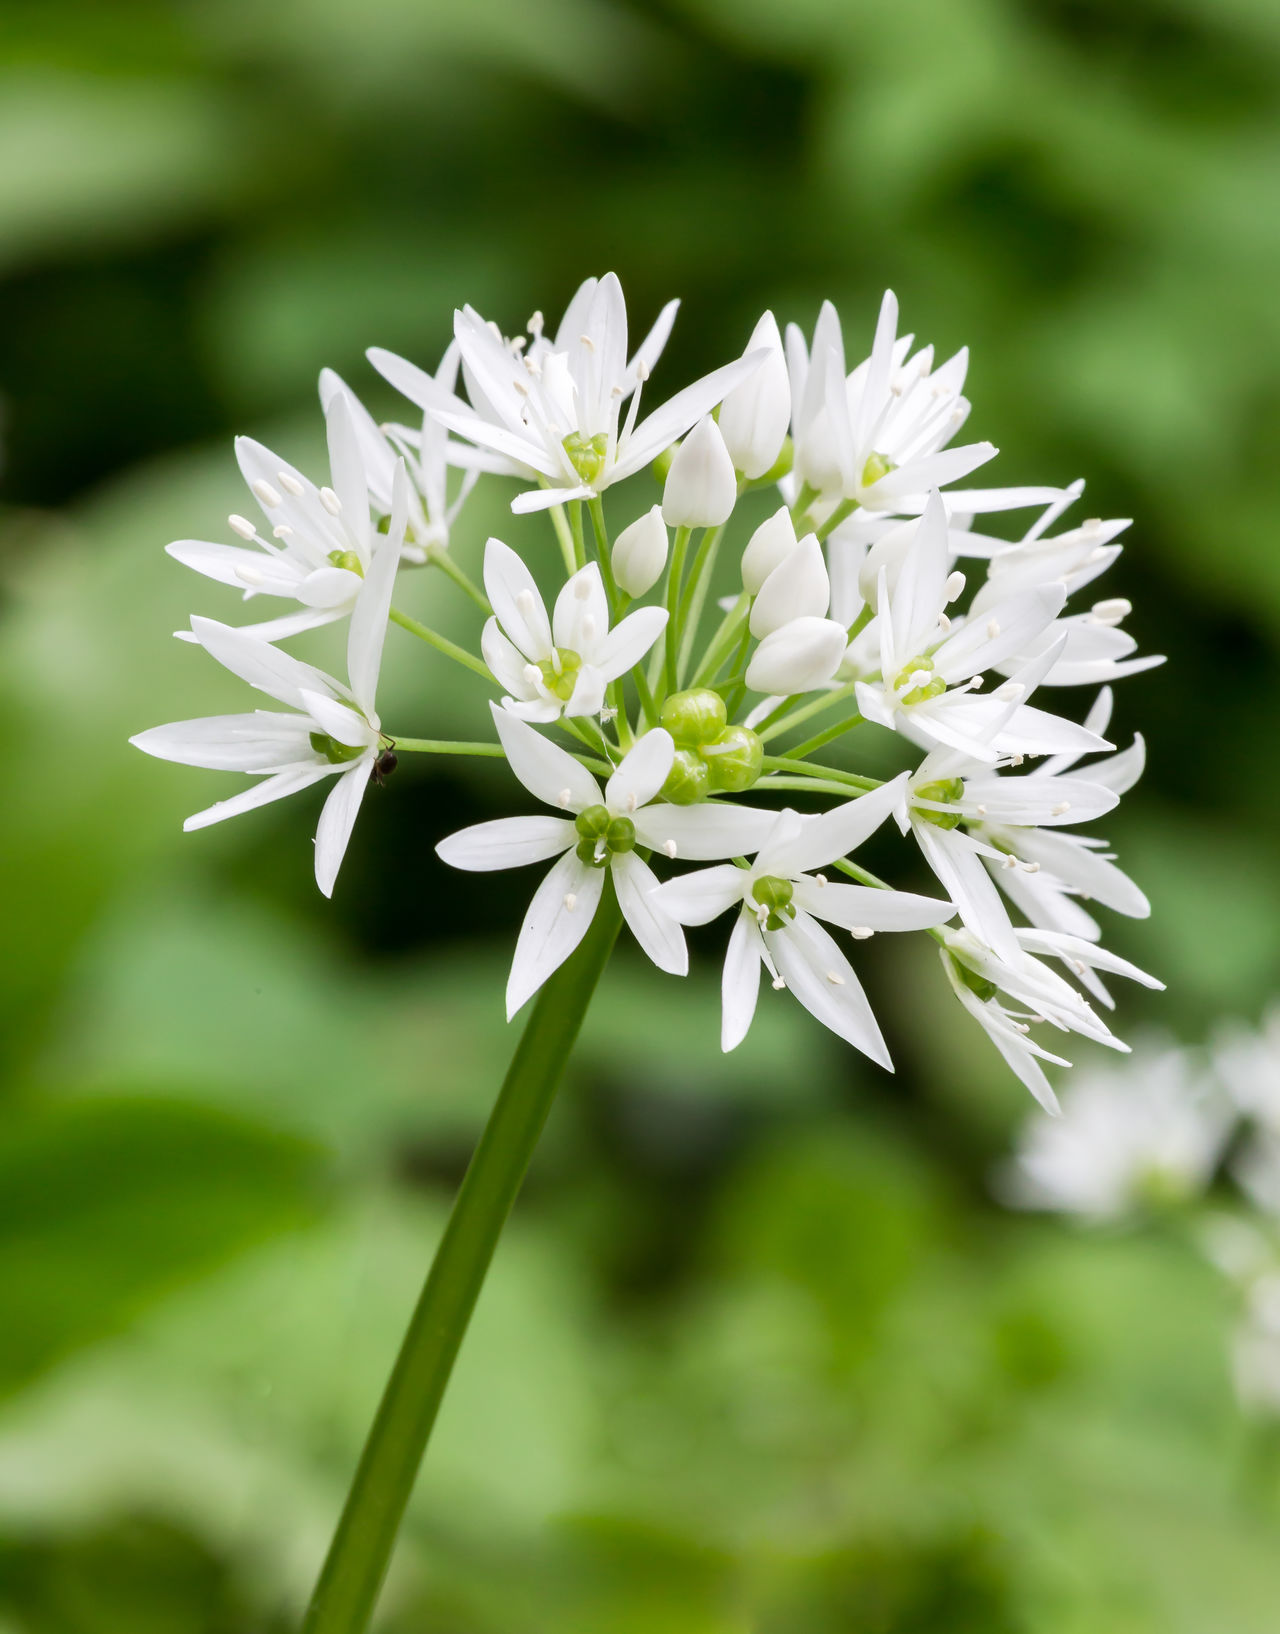 Wild Garlic Flower Beauty In Nature Blooming Close-up Day Flower Flower Head Focus On Foreground Fragility Freshness Garlic Green Color Growth Nature No People Outdoors Petal Plant White Color